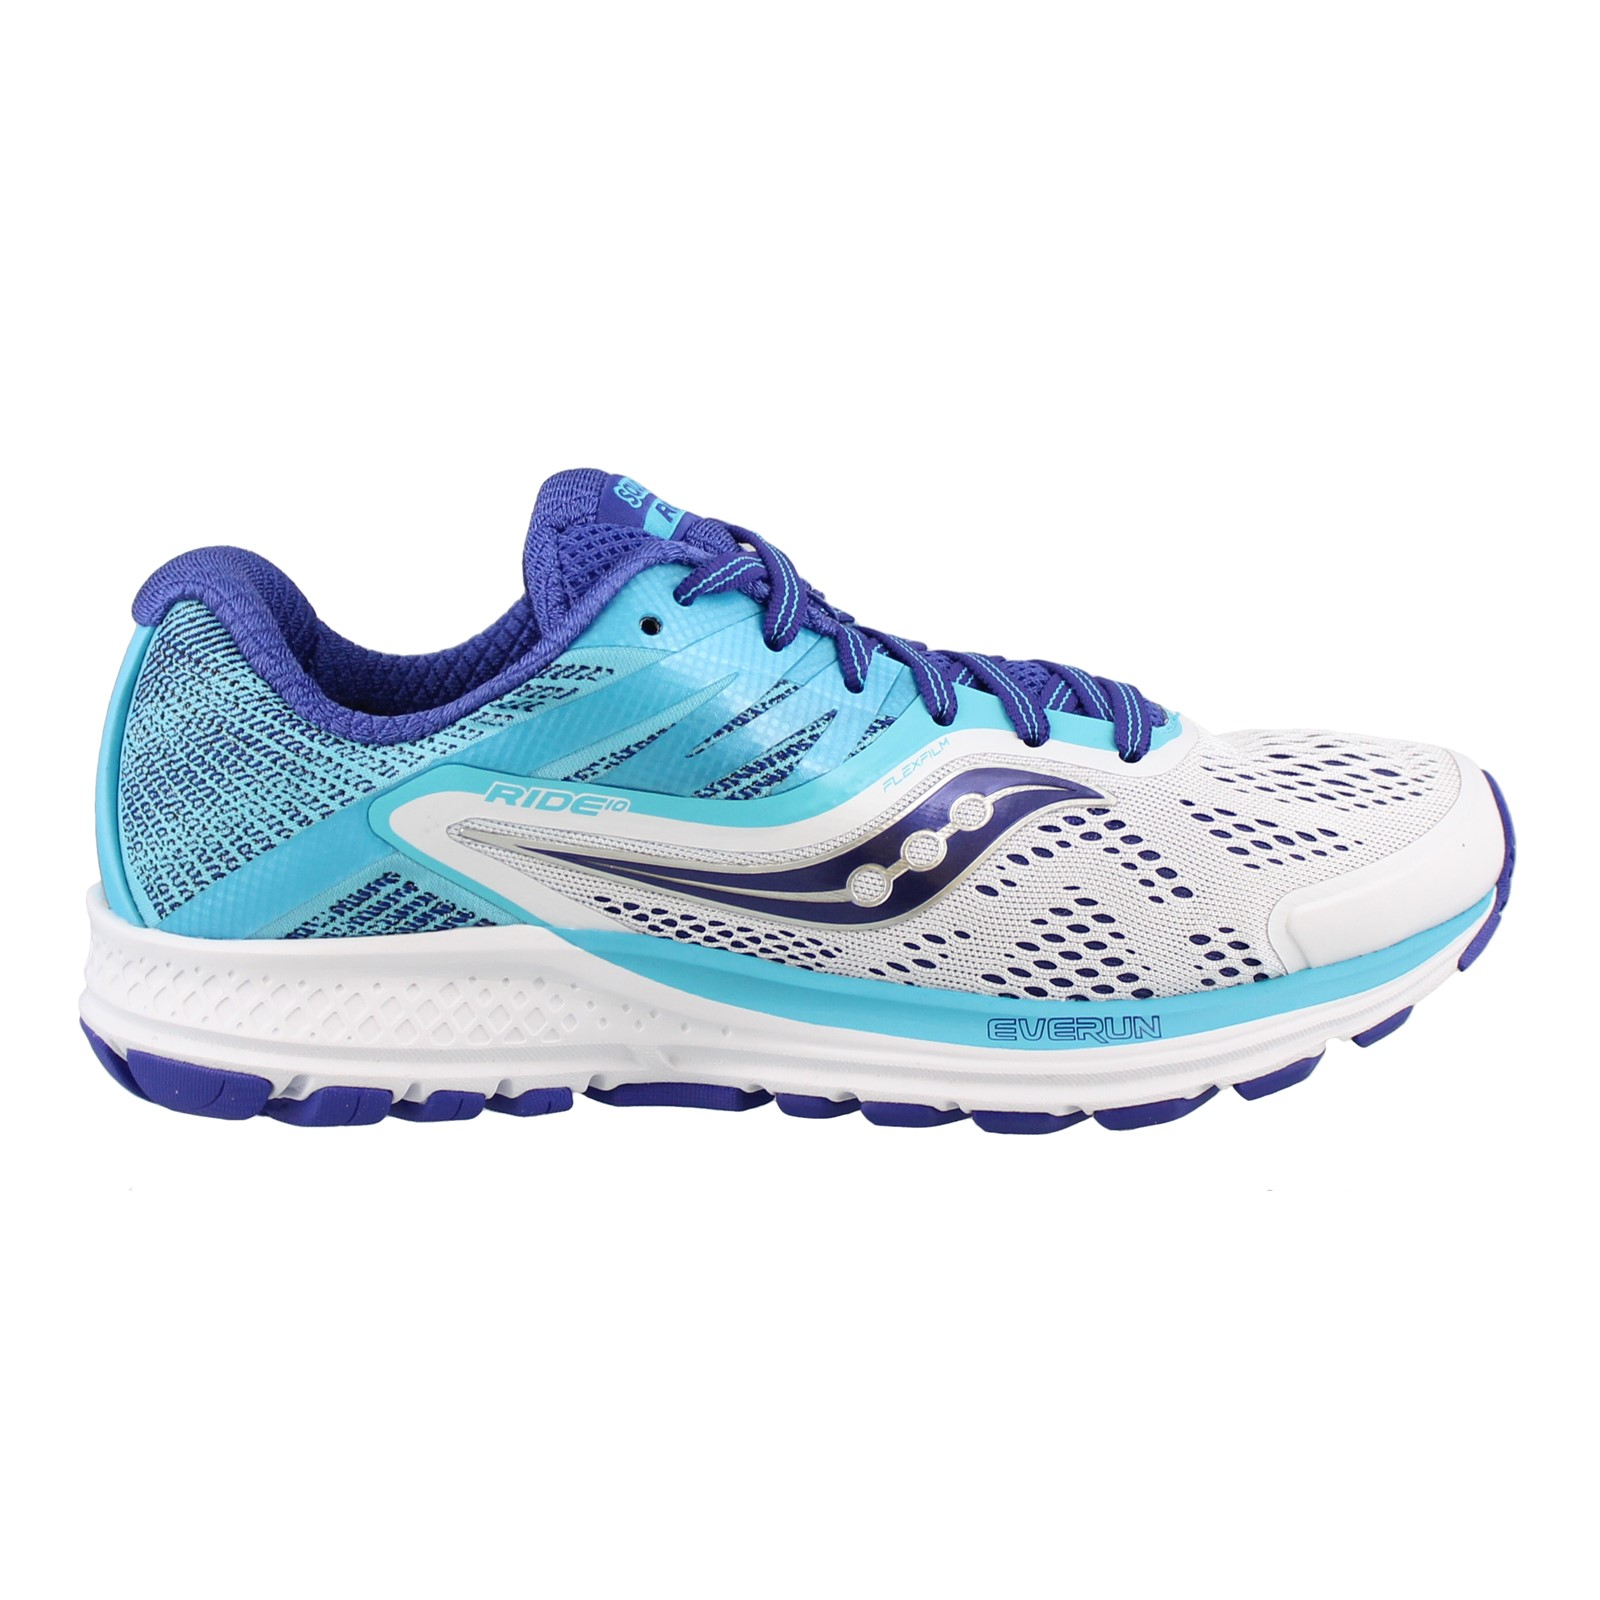 Women's SAUCONY, RIDE 10 RUNNING SNEAKERS WIDE